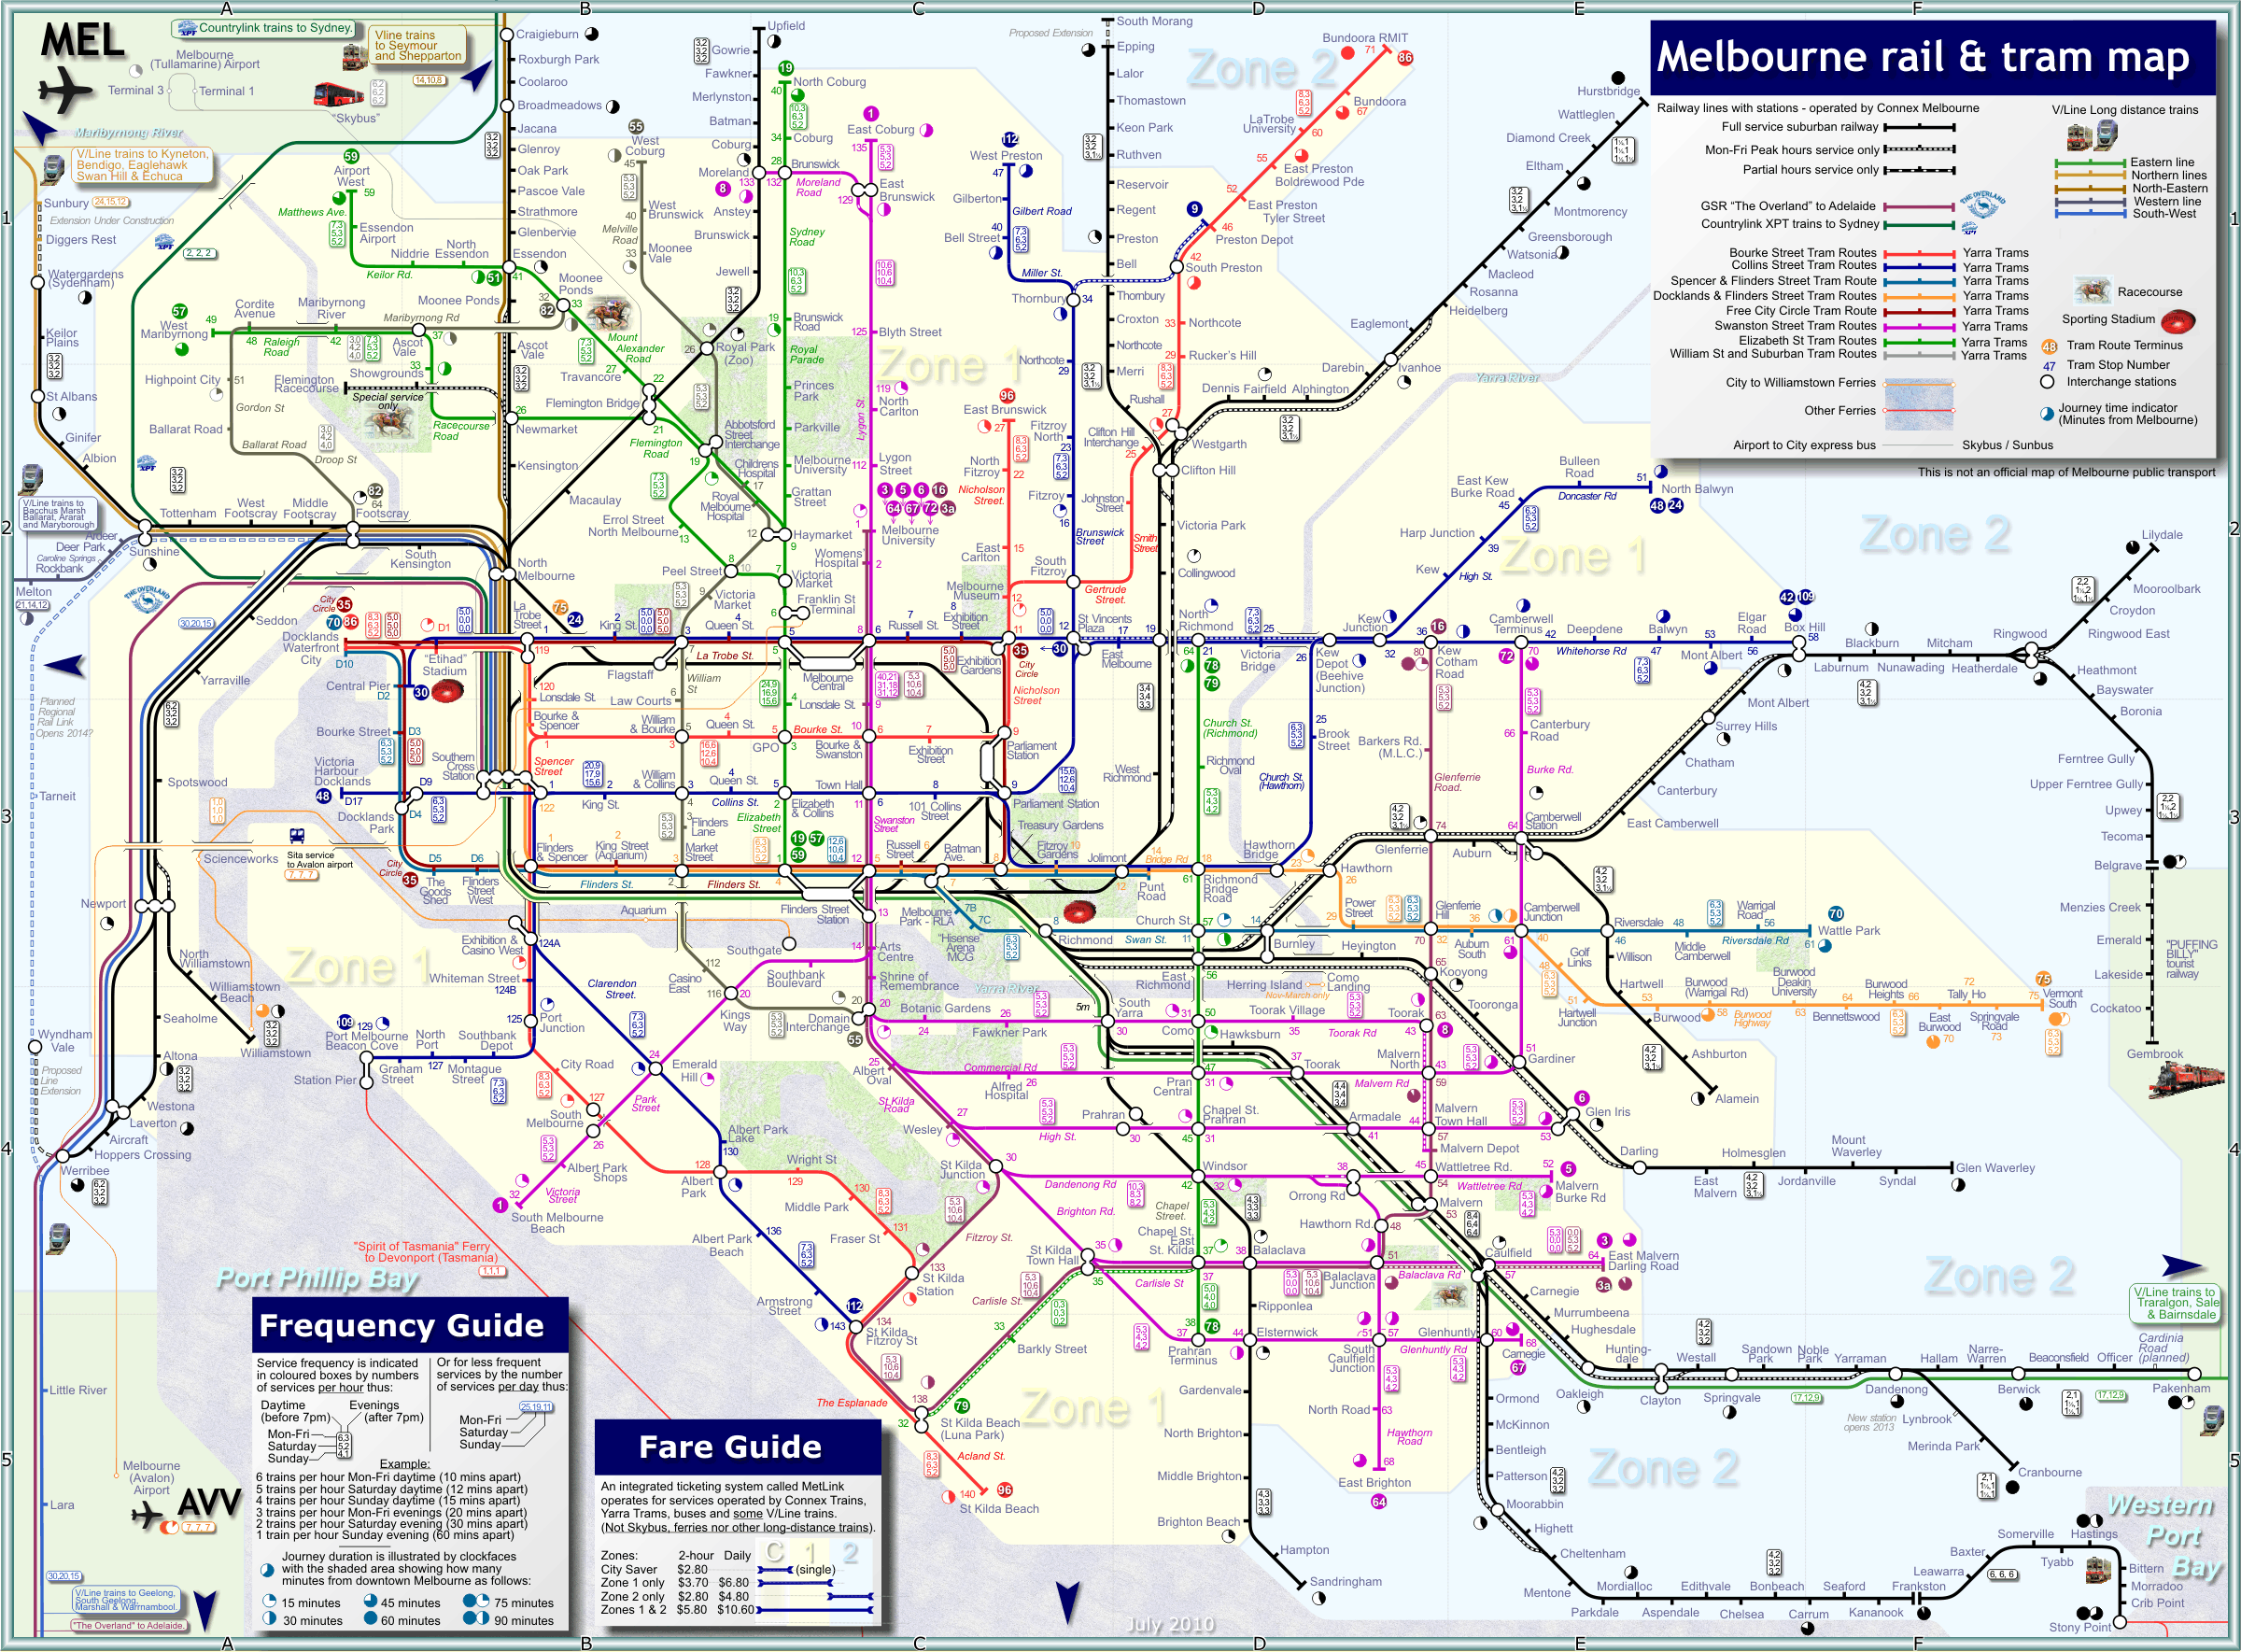 Australia Map Melbourne.Australia New Zealand Train Rail Maps